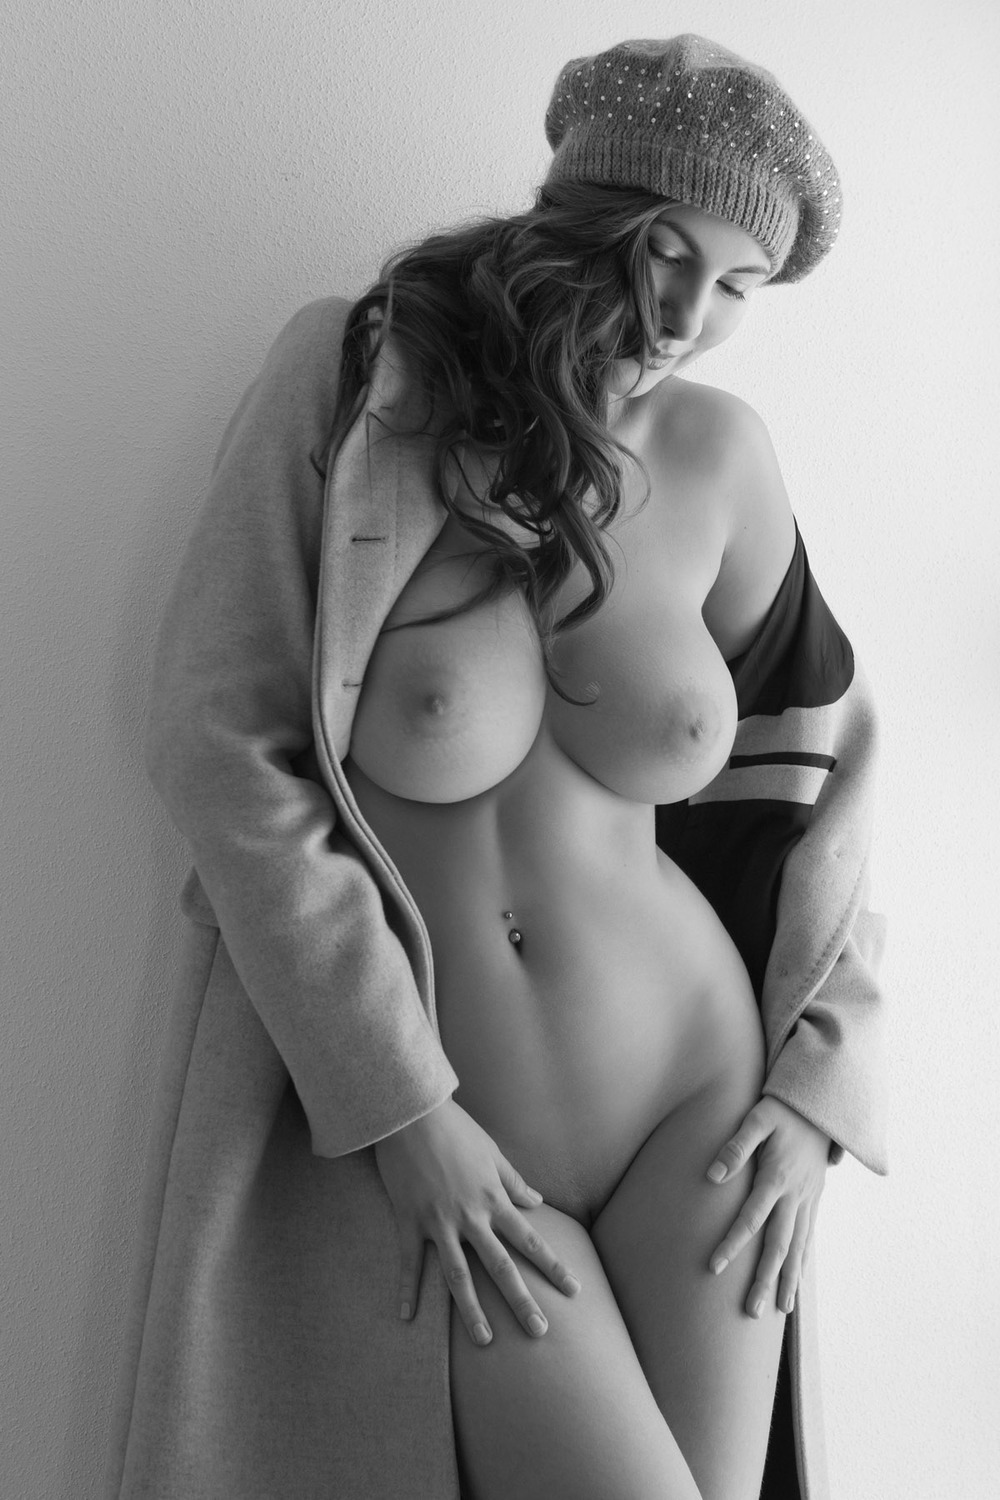 sexy big boobed french babe in fishnet stockings fucked Blackandwhite, Breasts, Clrbf, Girl, Goodbreasts, Goodmorning, Handsonbreasts, Nude, Prettygirl